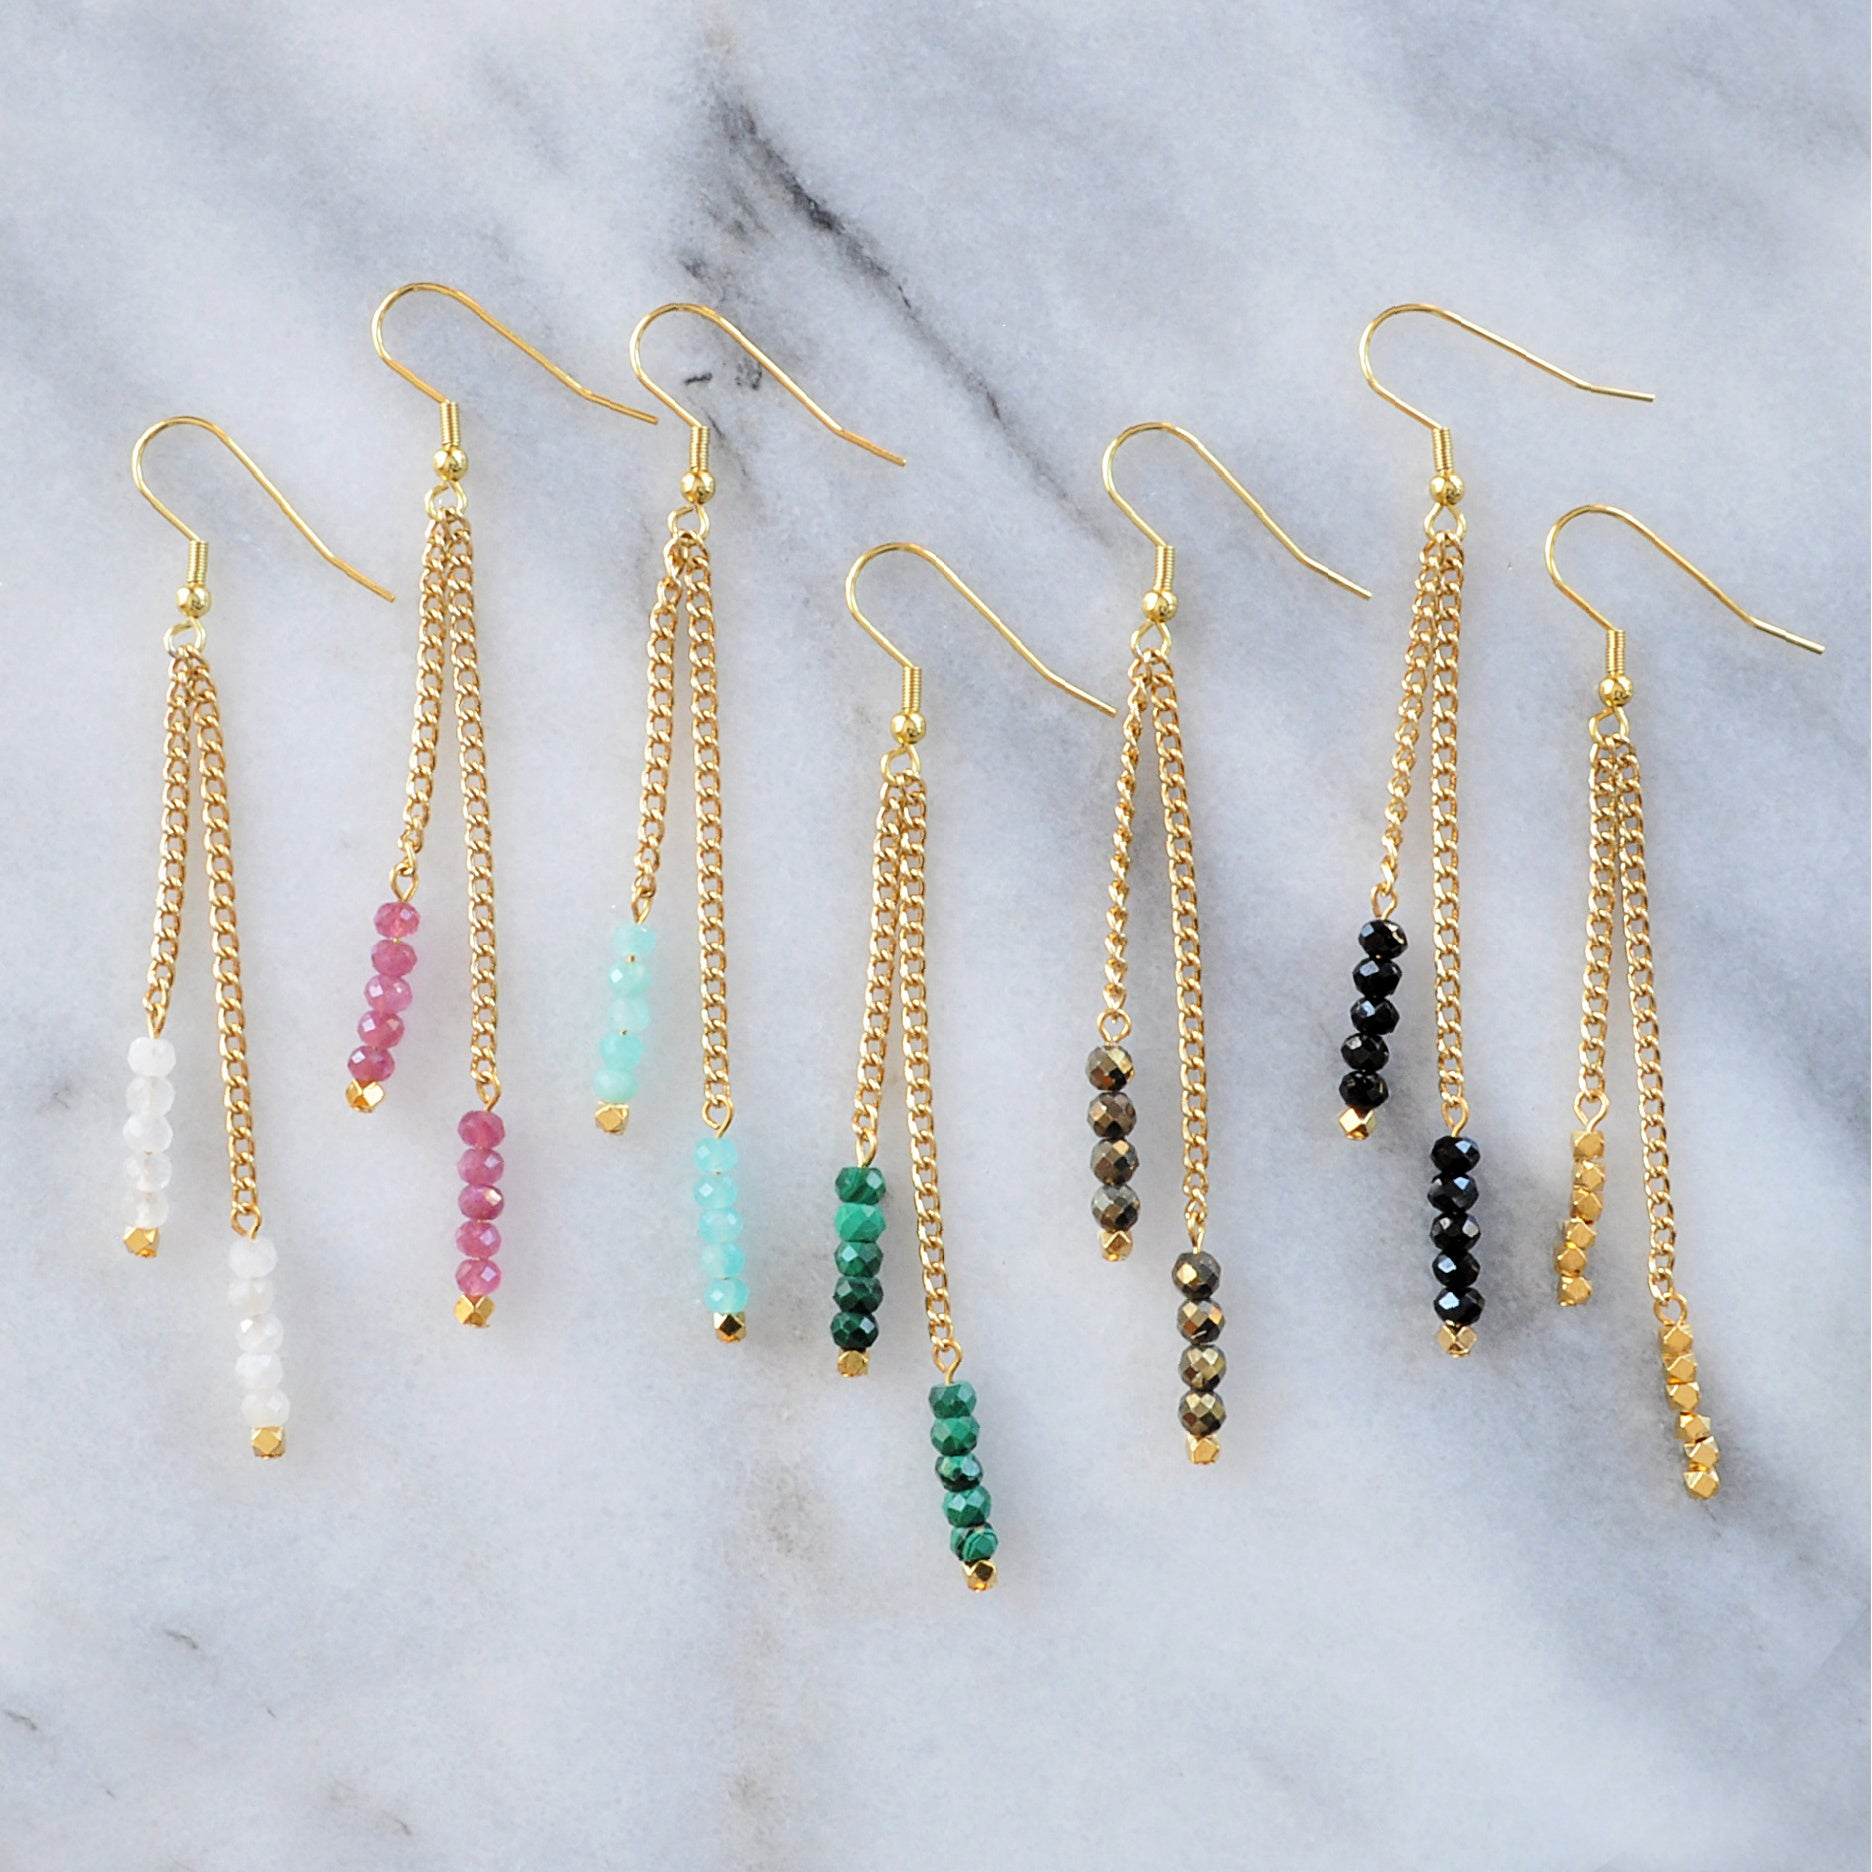 Libby & Smee Gemstone Gold chain Earrings available with Moonstone, Pink Tourmaline, Amazonite, Malachite, Pyrite, Black Spinel and Gold Beads